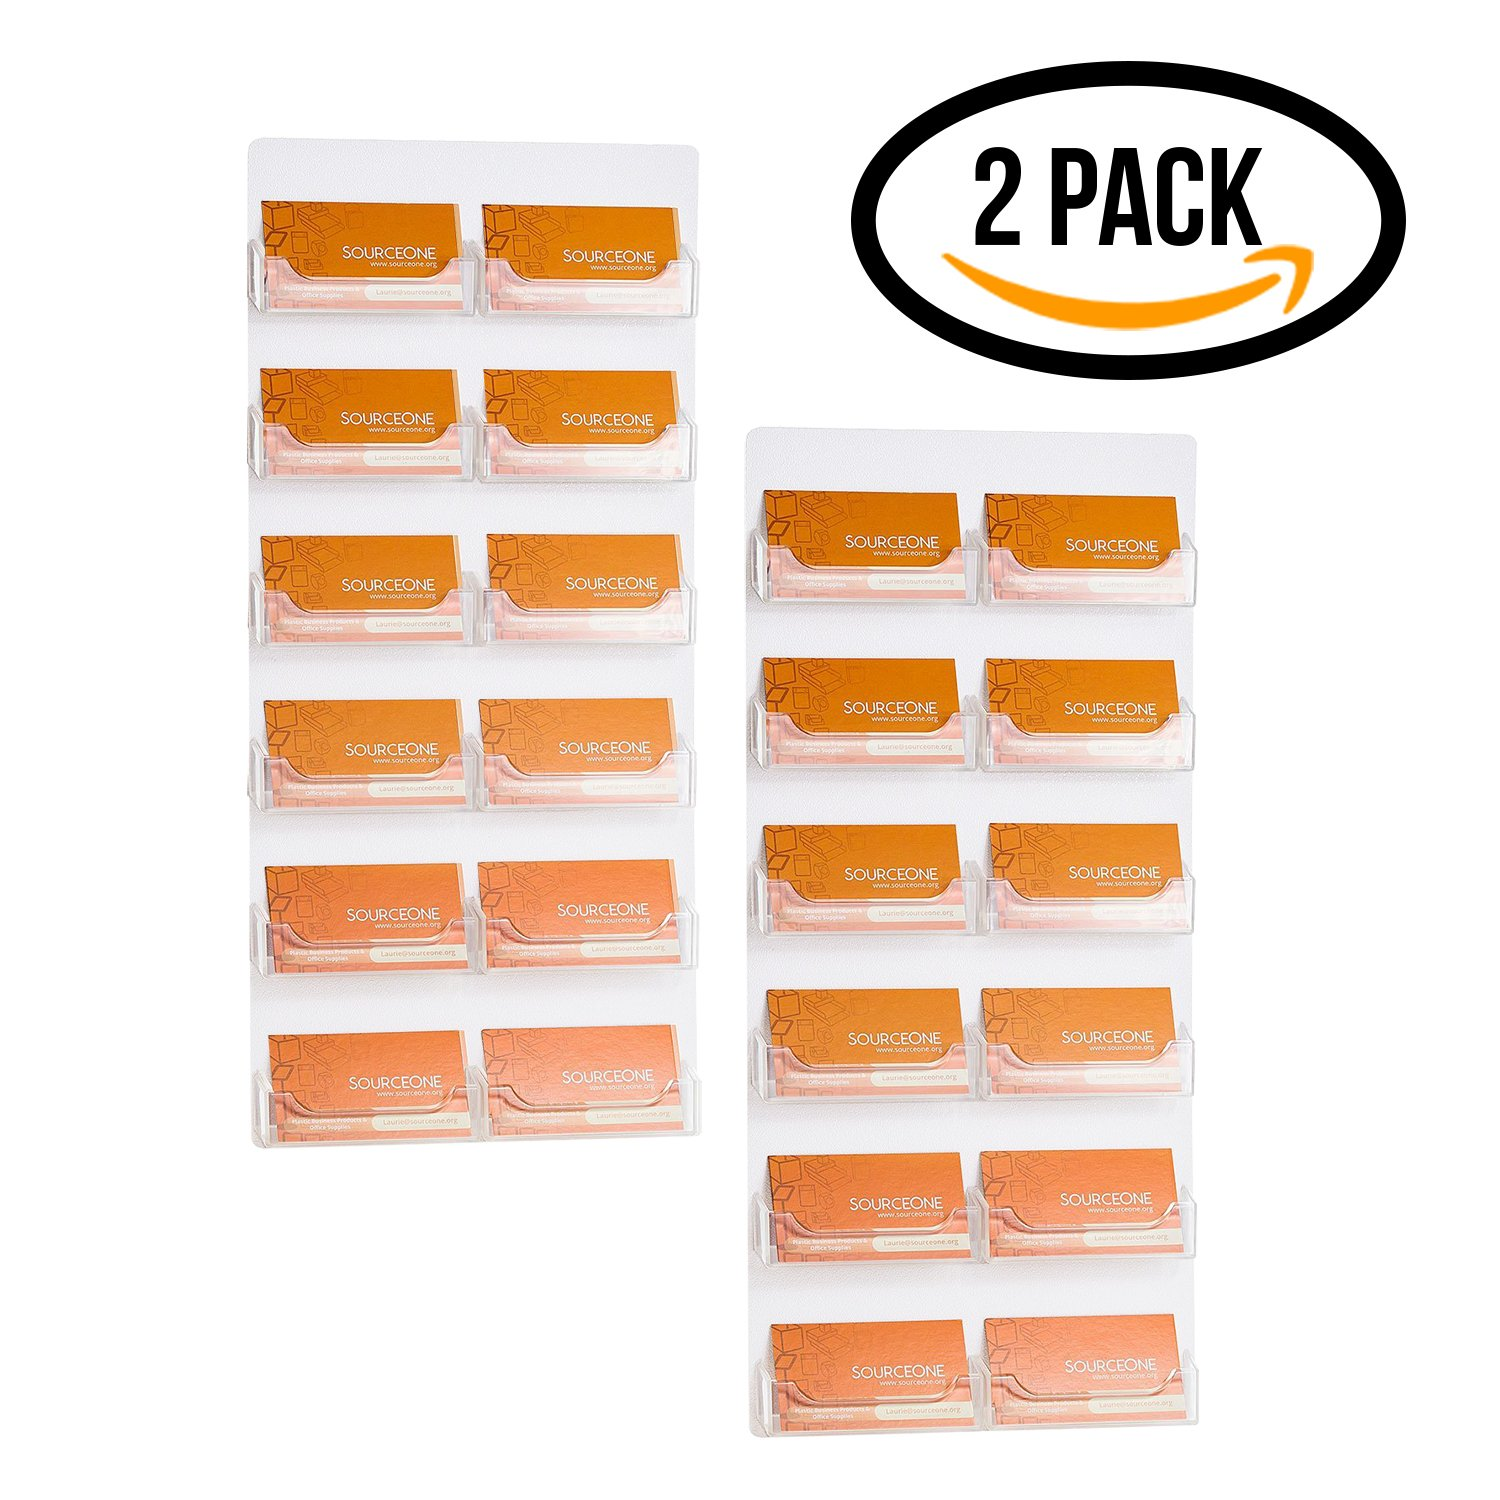 Source One 12 Pocket 2 Piece Set Wall Mount Business Card Holders Displays (12P-BC-WM-Cl-2PC)